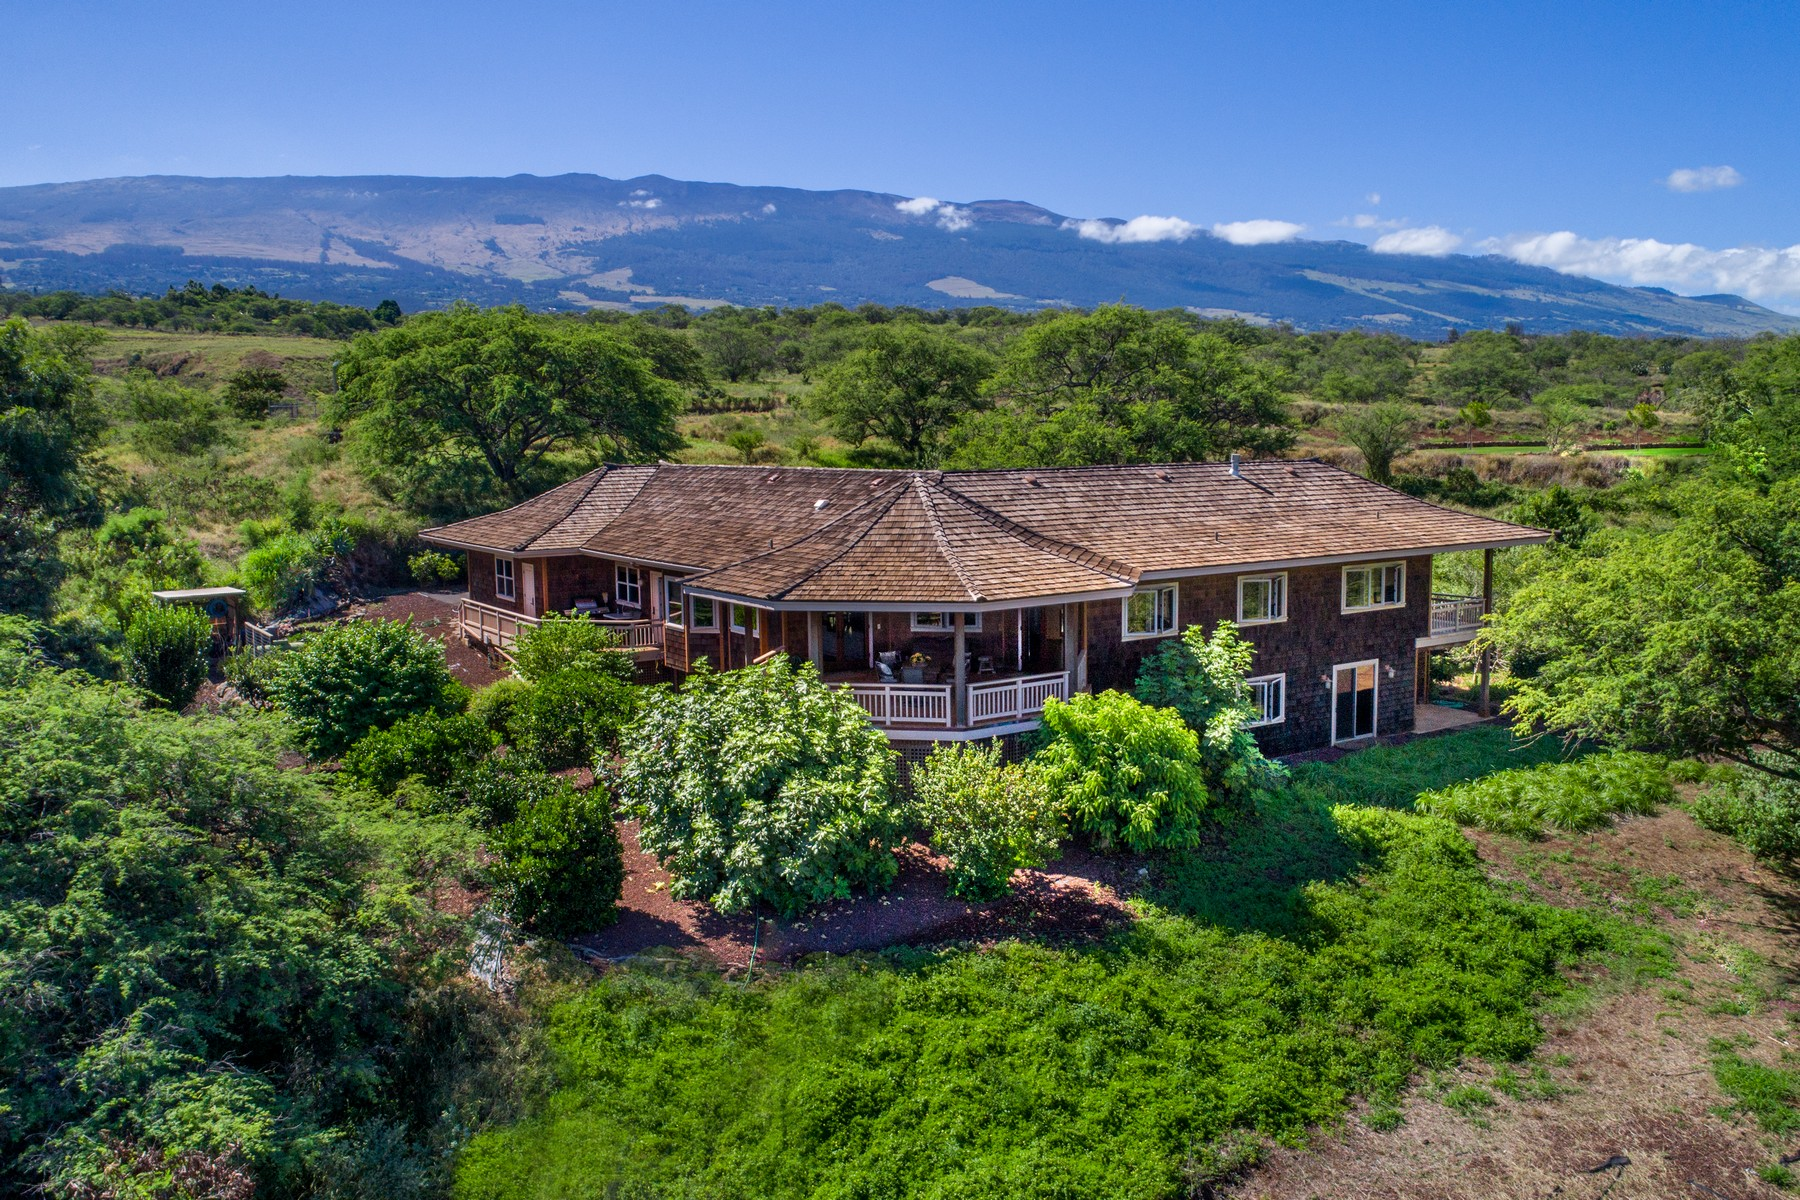 独户住宅 为 销售 在 Maui Upcountry Classic Plantation Home On 6 Acres 101 Ikena Kai Place 库拉, 夏威夷 96790 美国